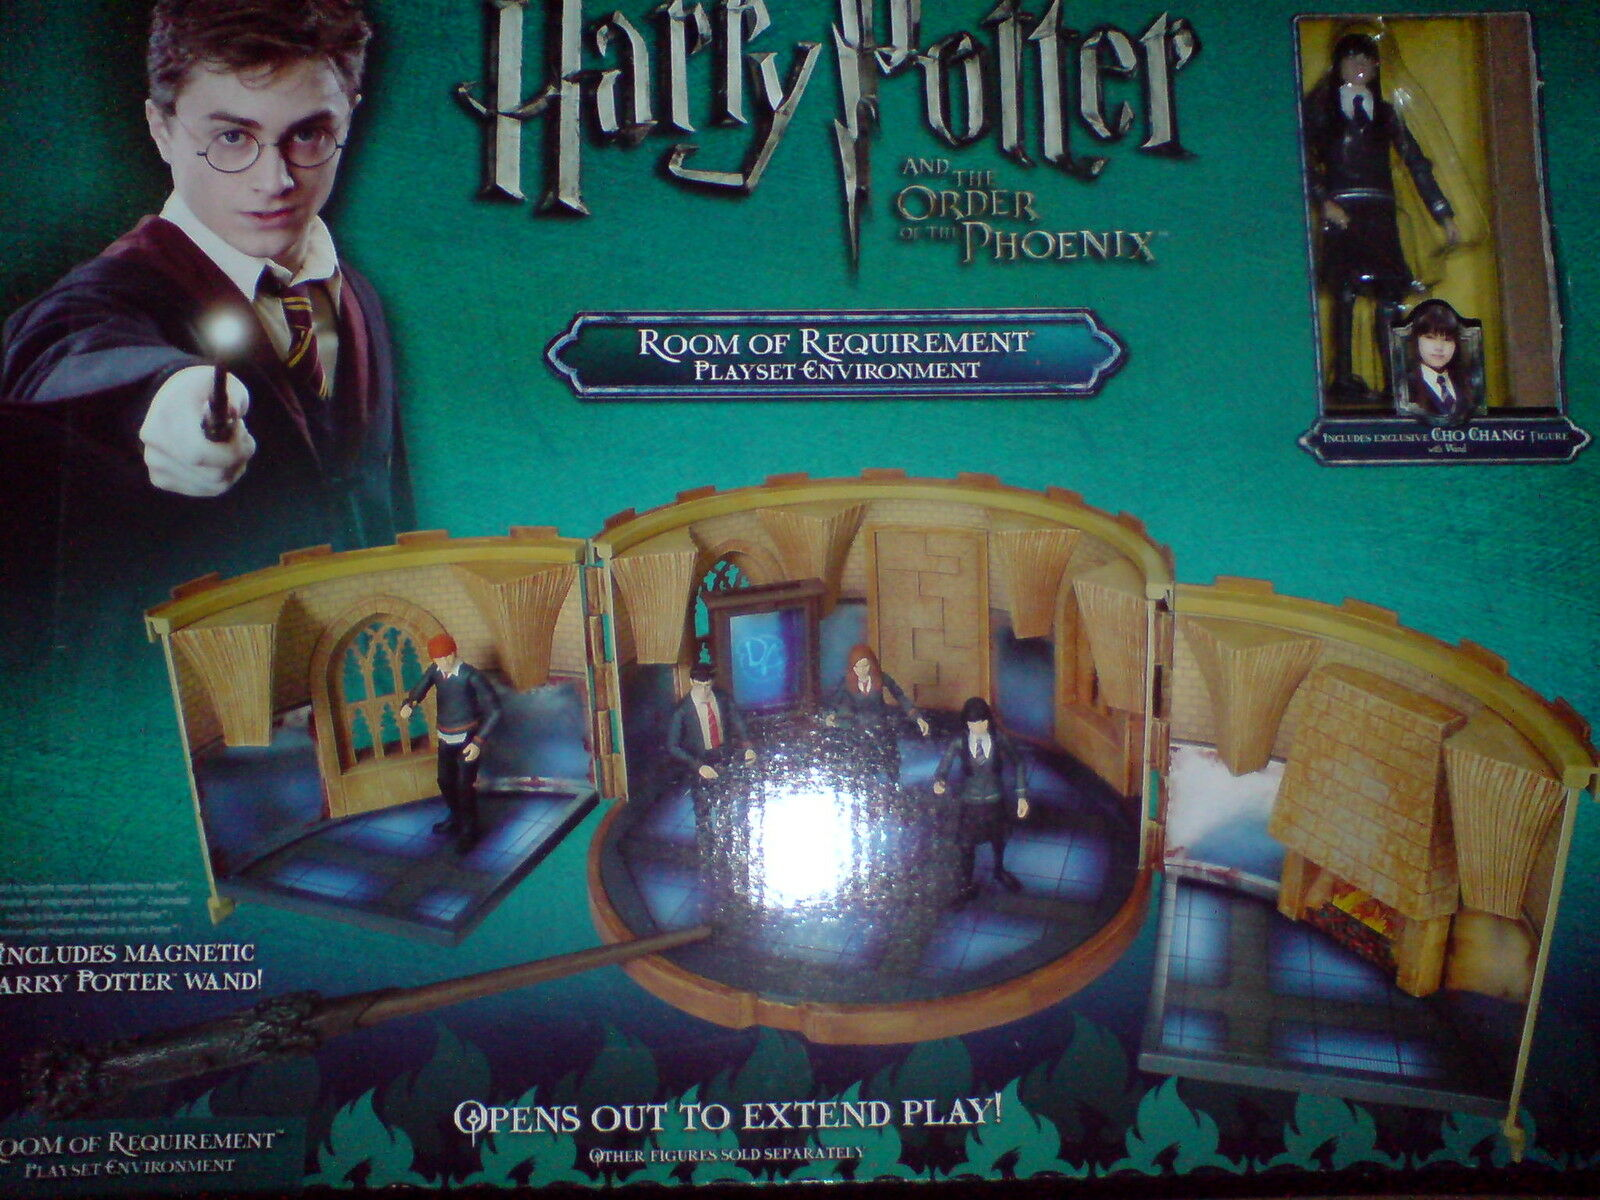 HARRY POTTER AND THE ORDER OF THE PHOENIX  ROOM OF REQUIREMENT PLAYSET 3 BNIB